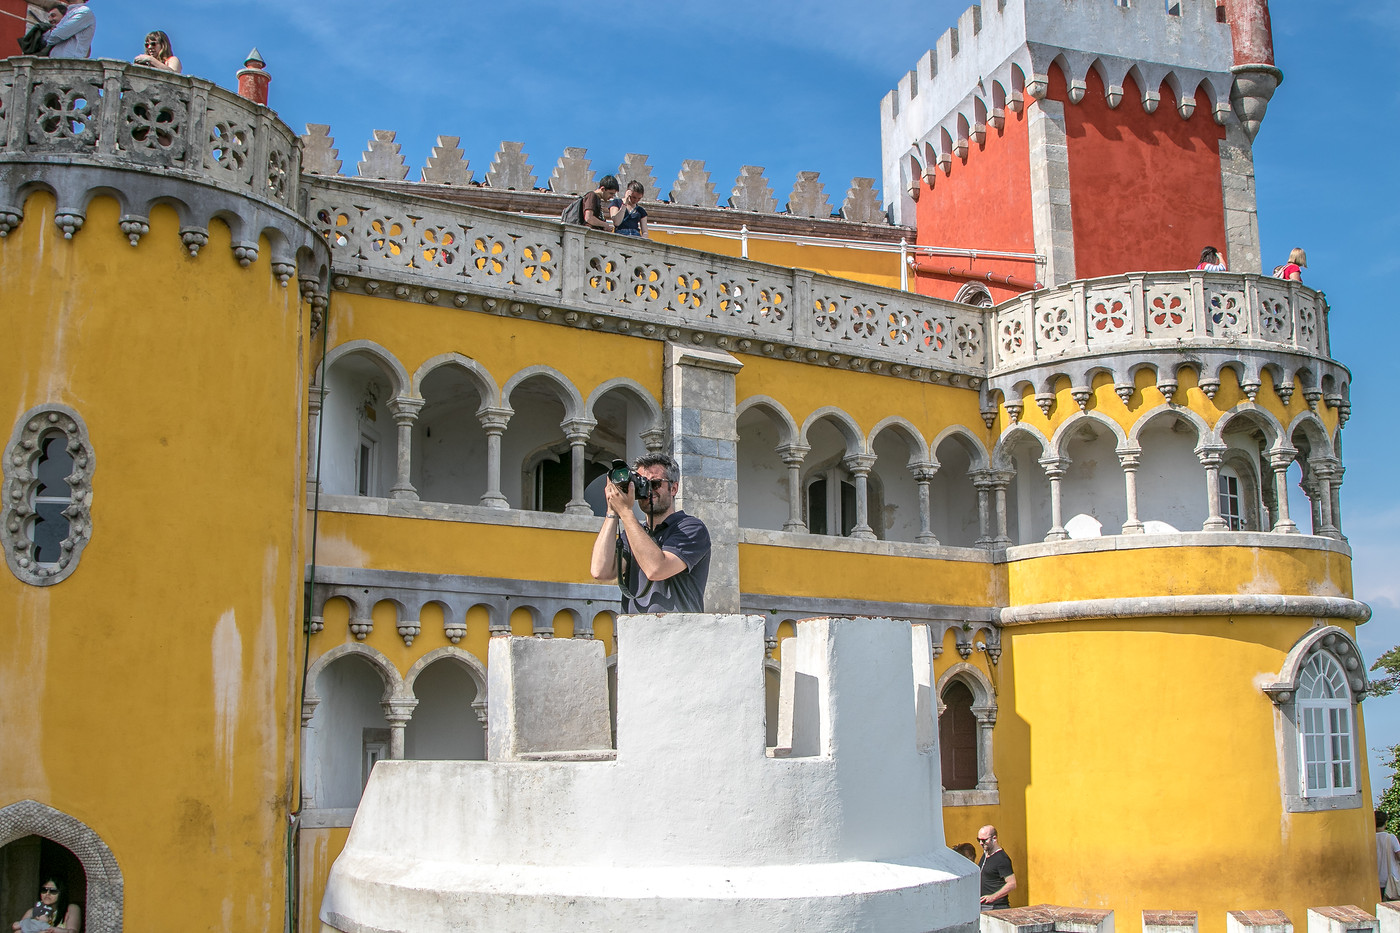 Taking pictures of Pena Palace